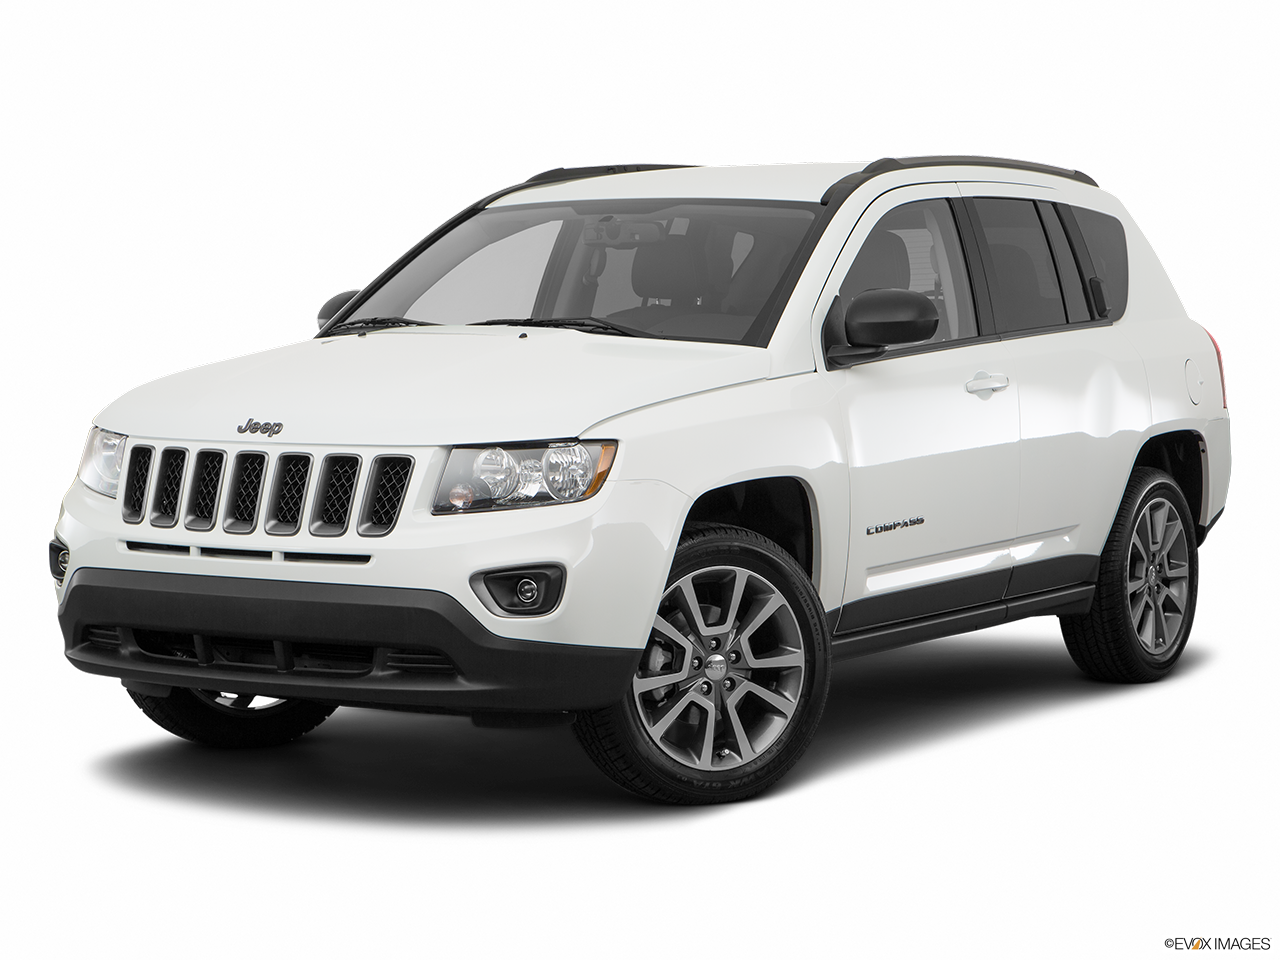 Test Drive A 2017 Jeep Compass at Nashville Chrysler Dodge Jeep RAM in Antioch